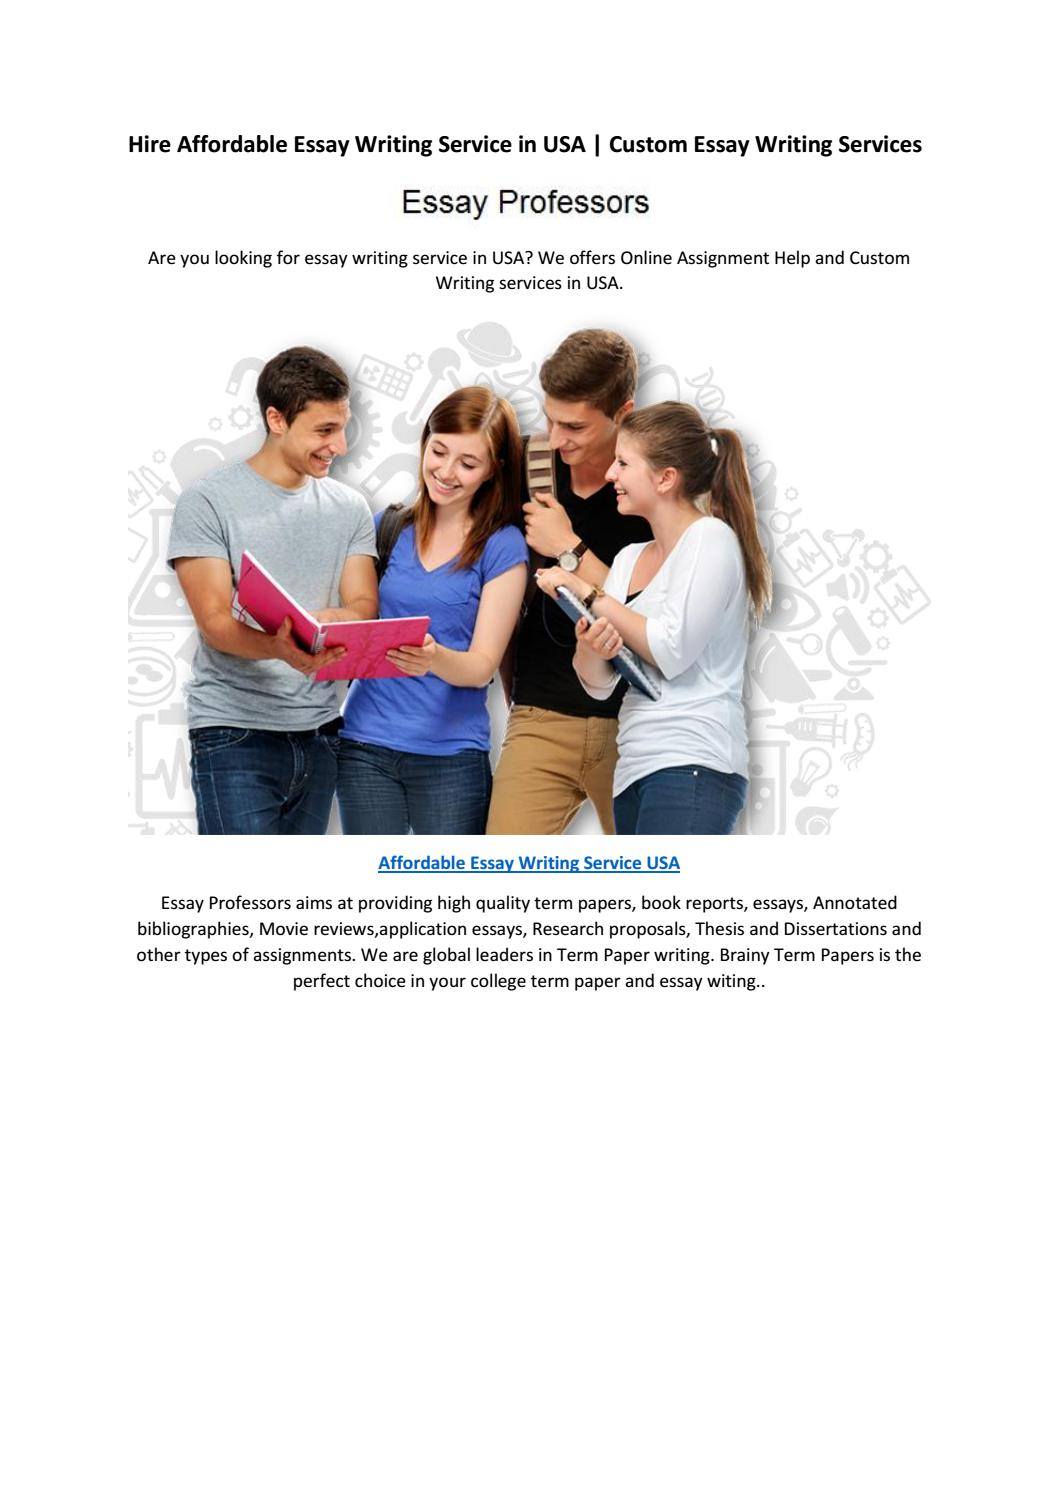 Top research paper writers for hire usa write objective dental assistant resume